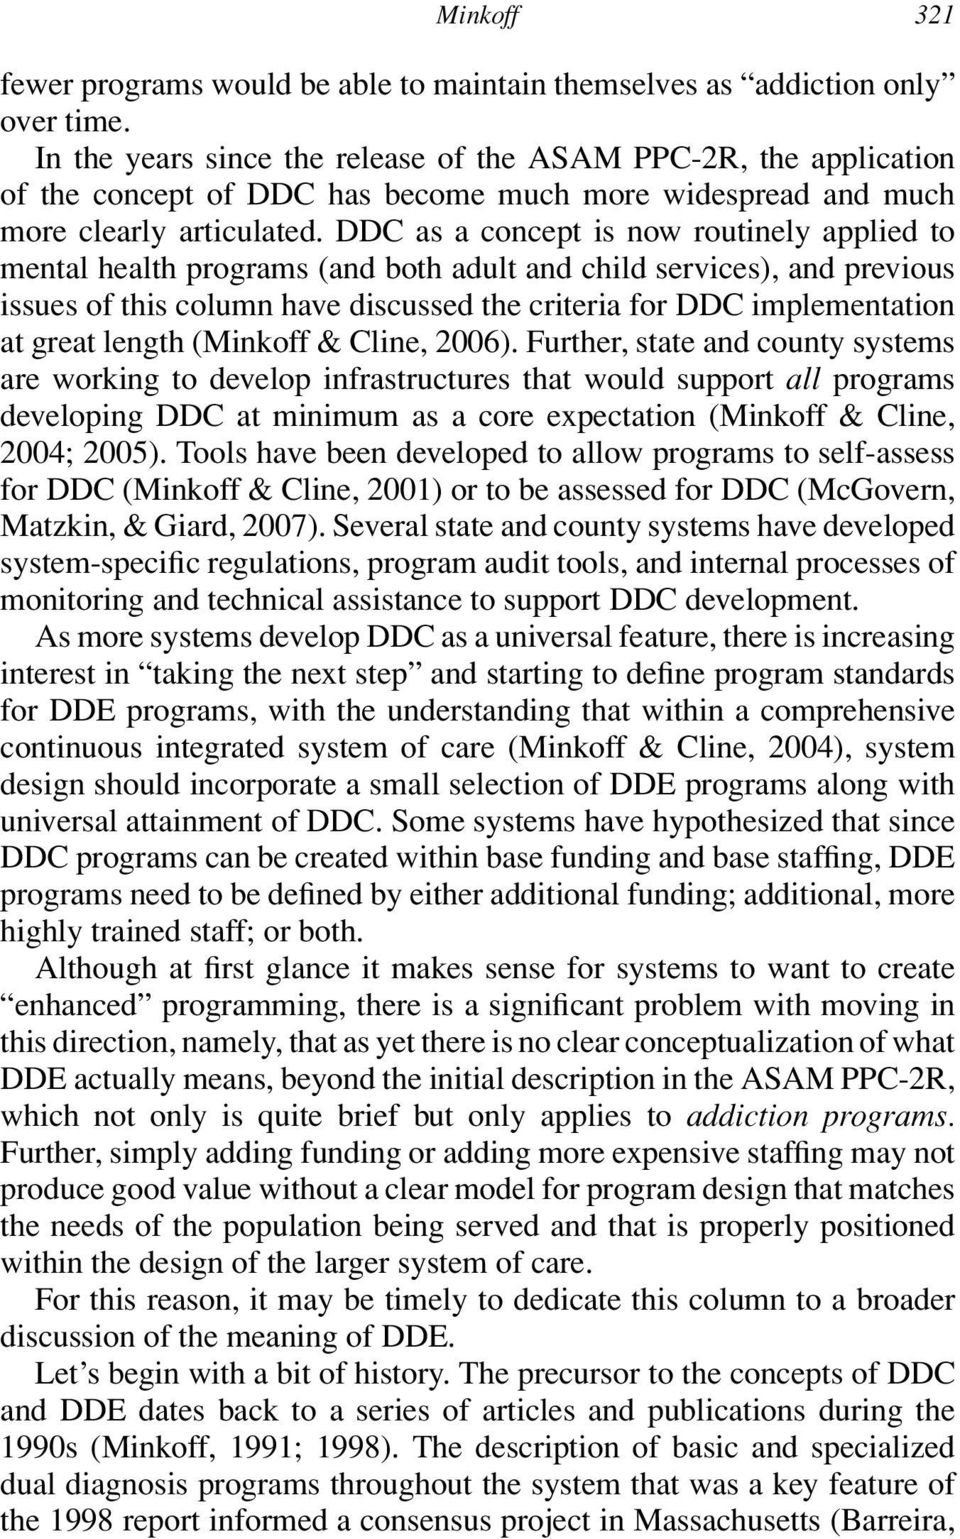 DDC as a concept is now routinely applied to mental health programs (and both adult and child services), and previous issues of this column have discussed the criteria for DDC implementation at great